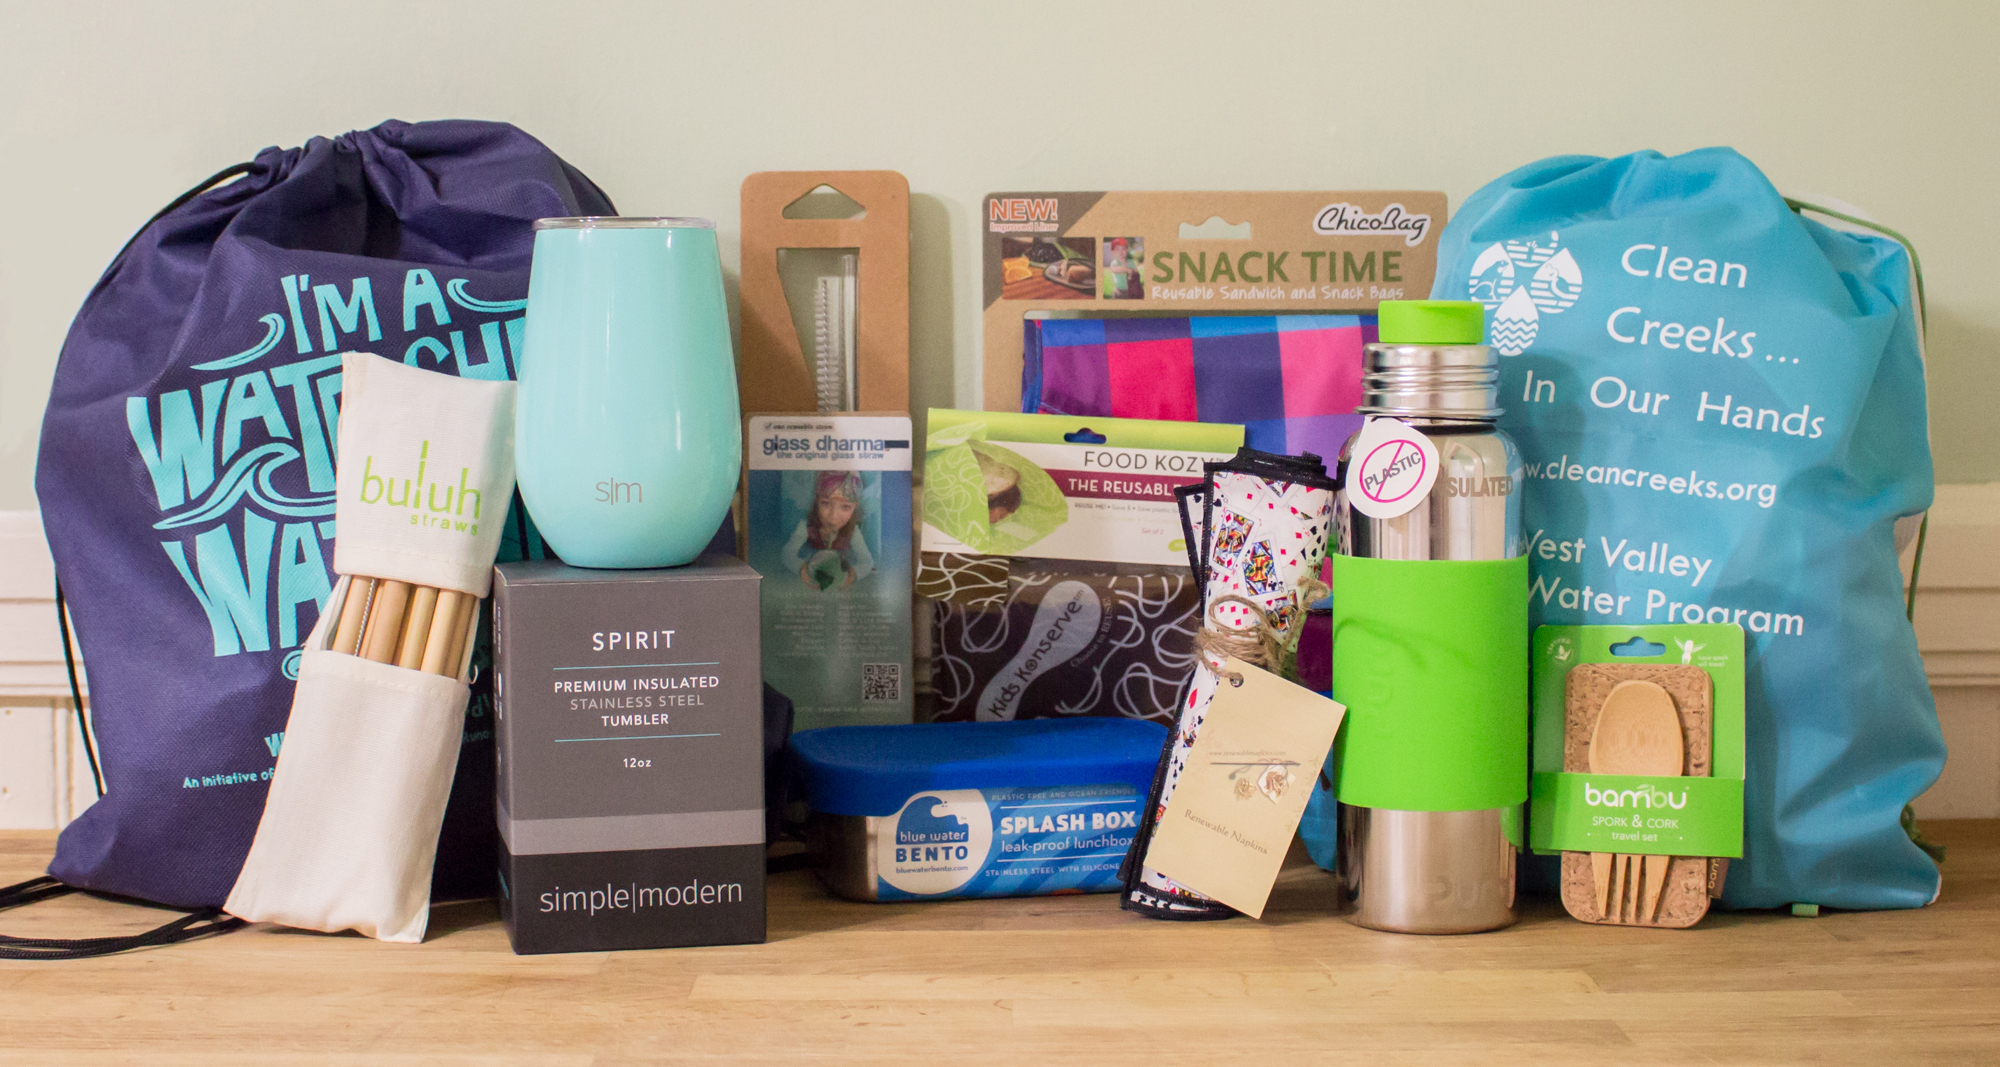 Start your own Reuse To Go kit to make single-use disposables a thing of the past. Reusable napkins, bags, utensils, cups, bottles, wraps, containers and straws are available in a wide variety of materials and designs to fit your lifestyle.